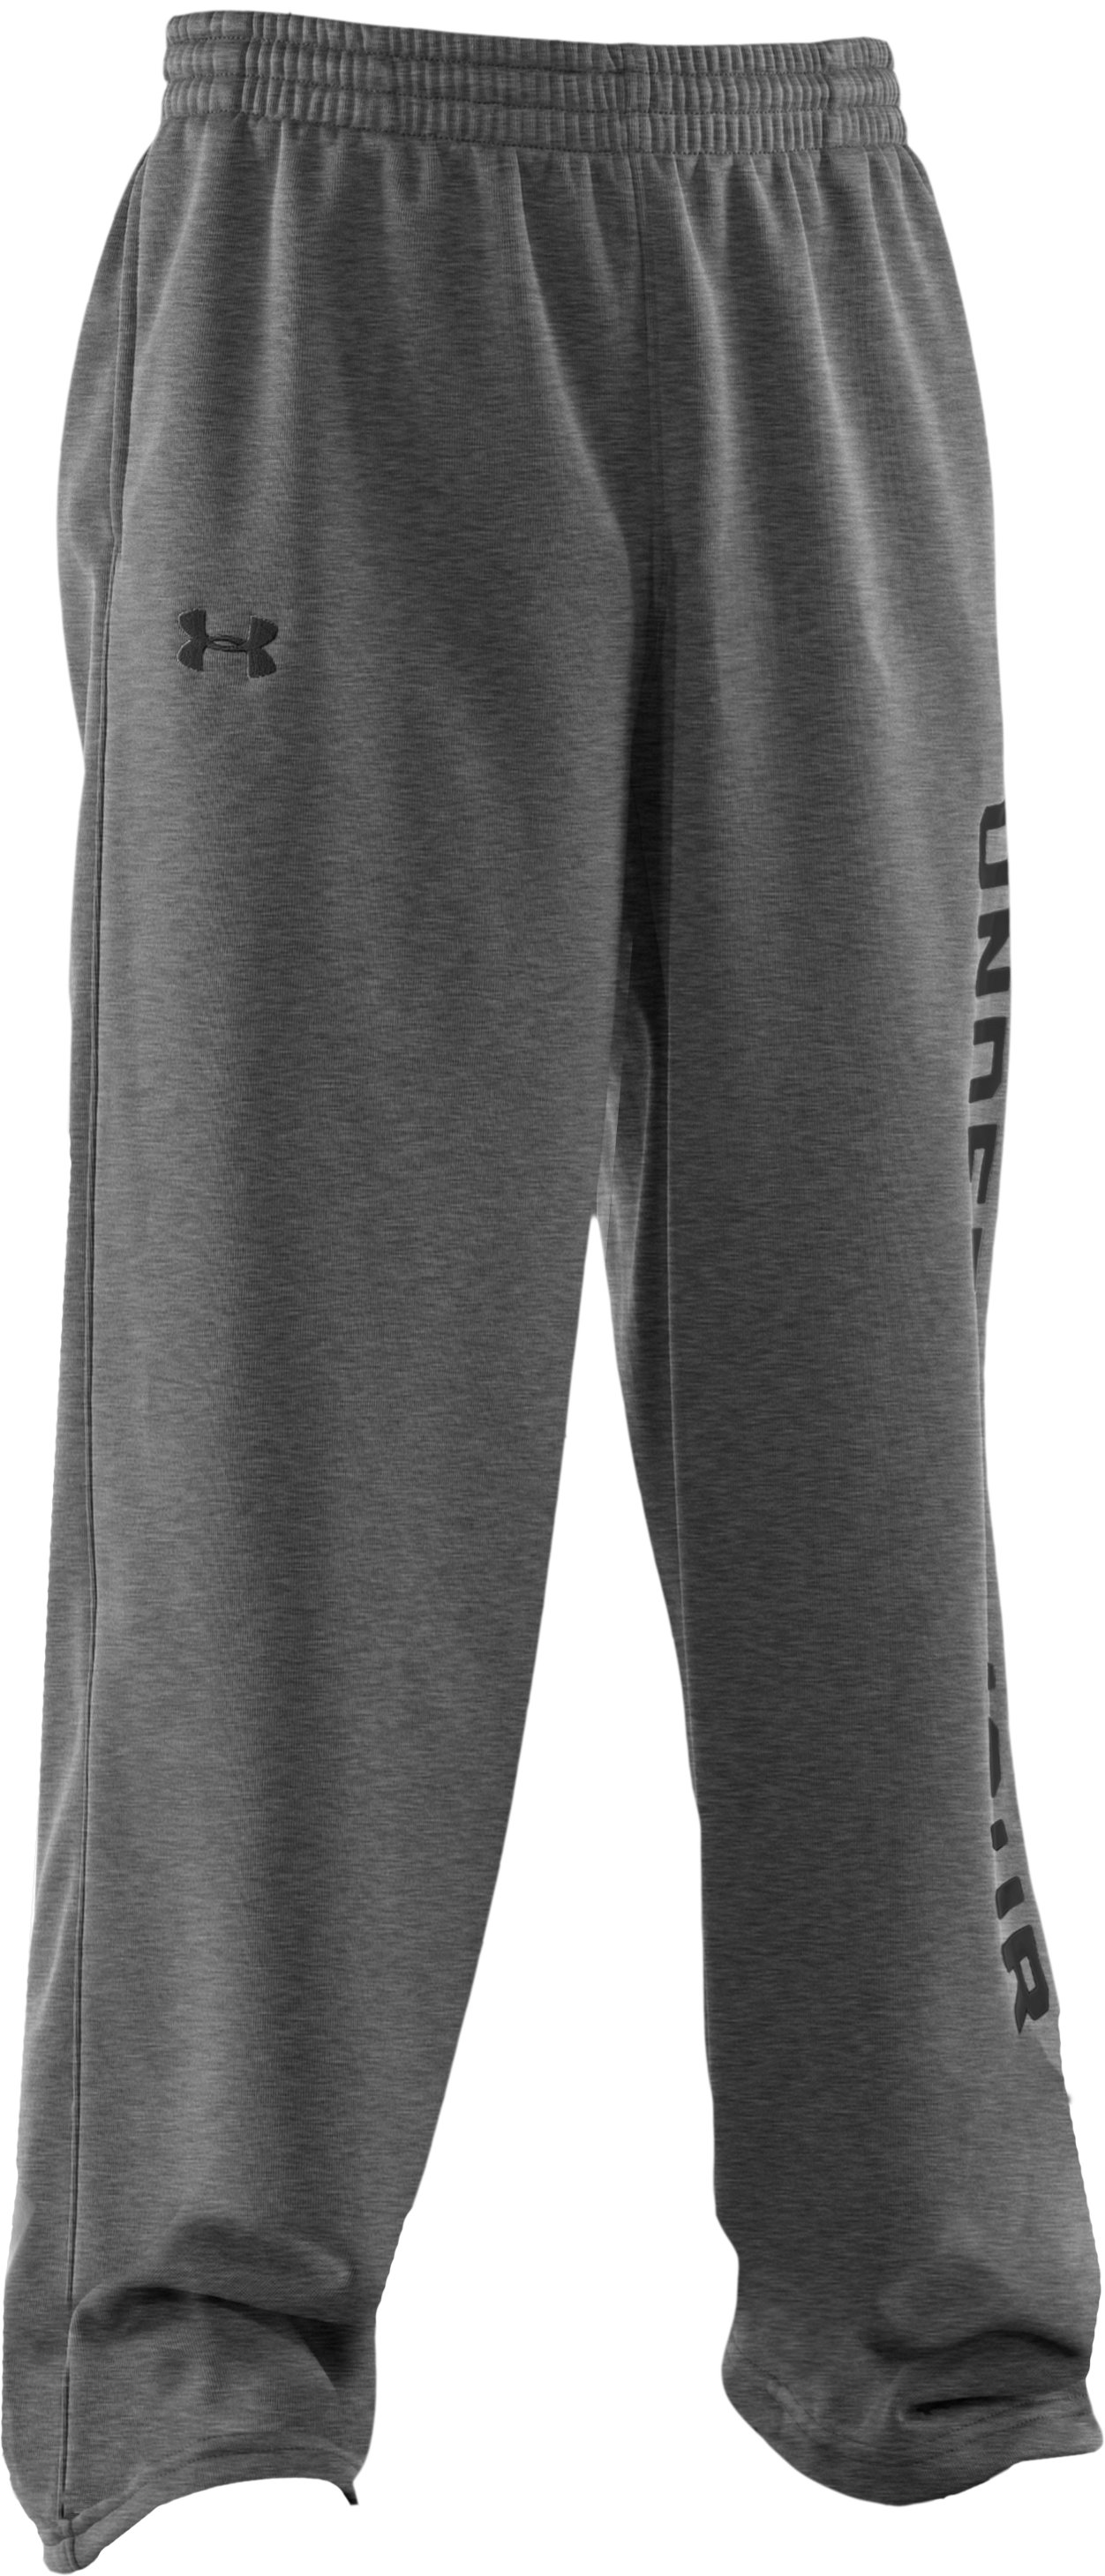 Boys' Armour® Fleece Storm Pants, True Gray Heather,